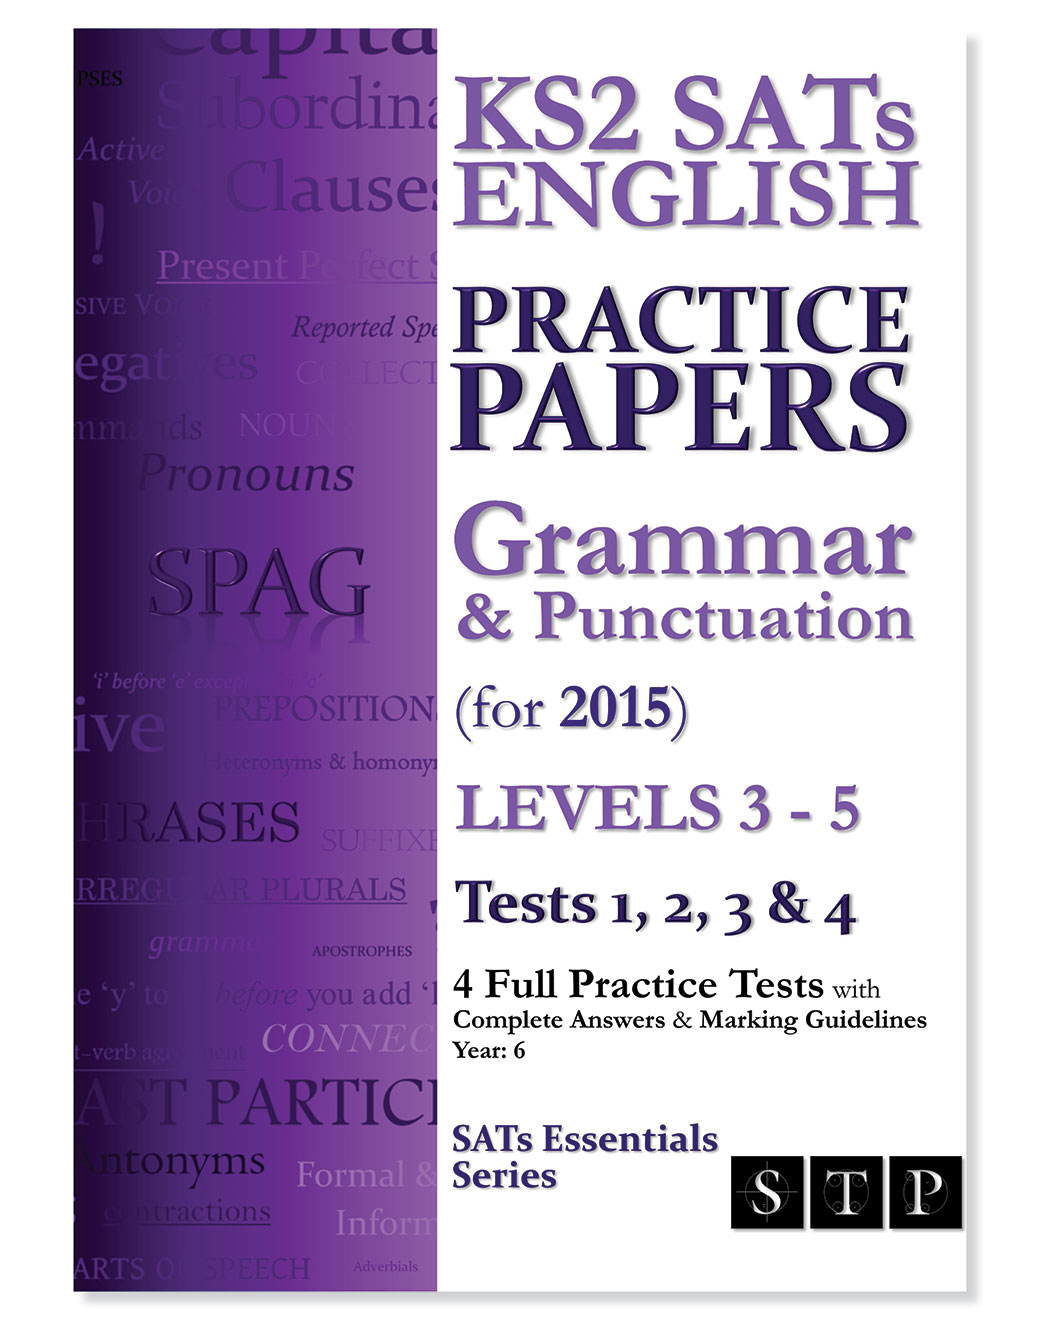 STP Books KS2 SATs English Practice Papers: Grammar & Punctuation (for 2015) Levels 3-5: Tests 1, 2, 3 & 4 (Year 6)